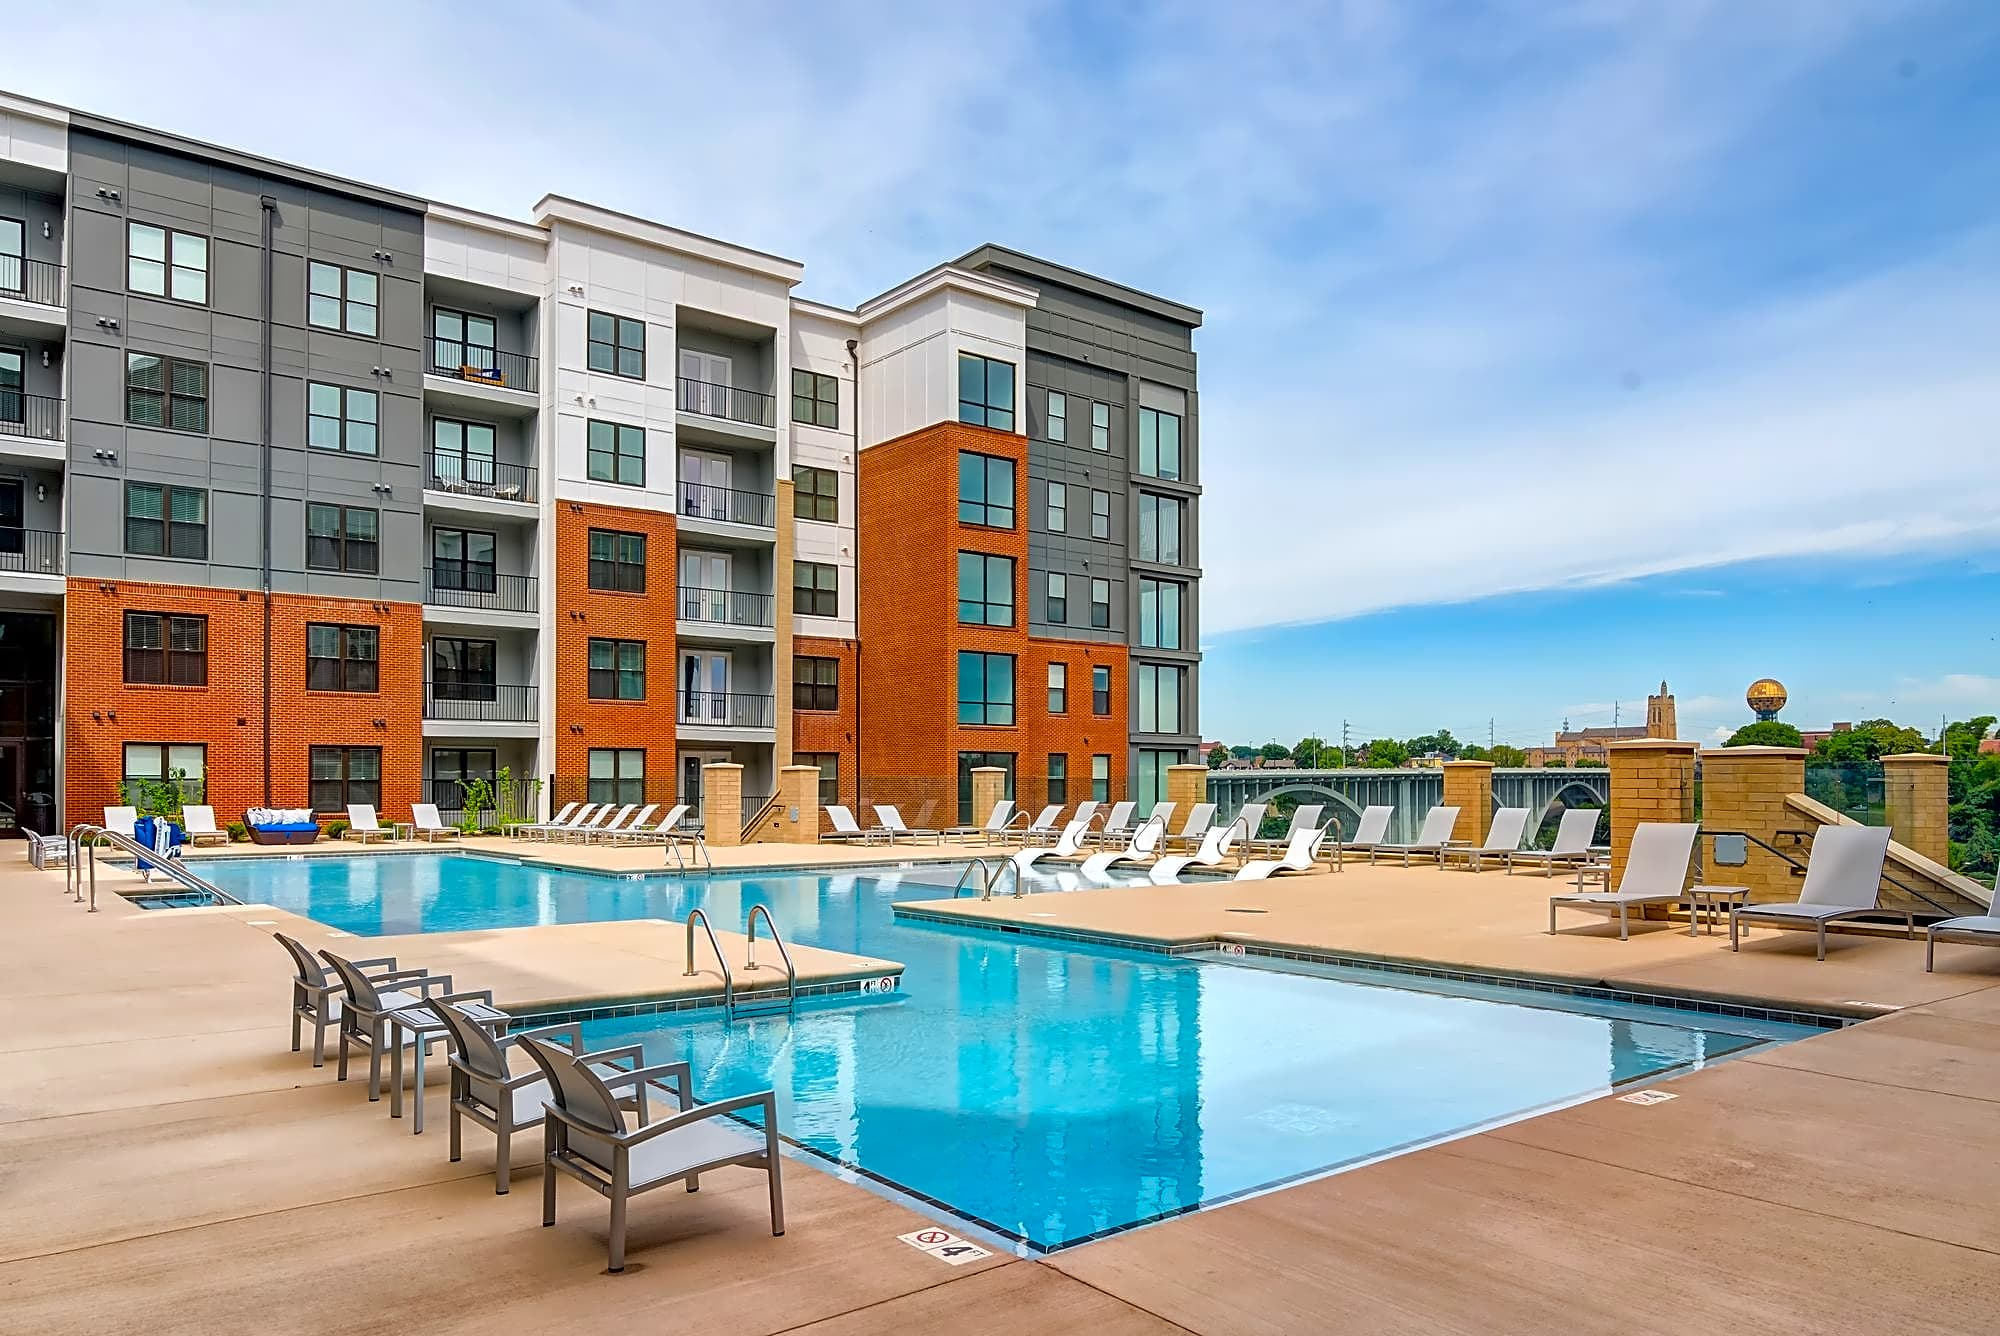 Apartments Near UTK One Riverwalk for University of Tennessee: Knoxville Students in Knoxville, TN